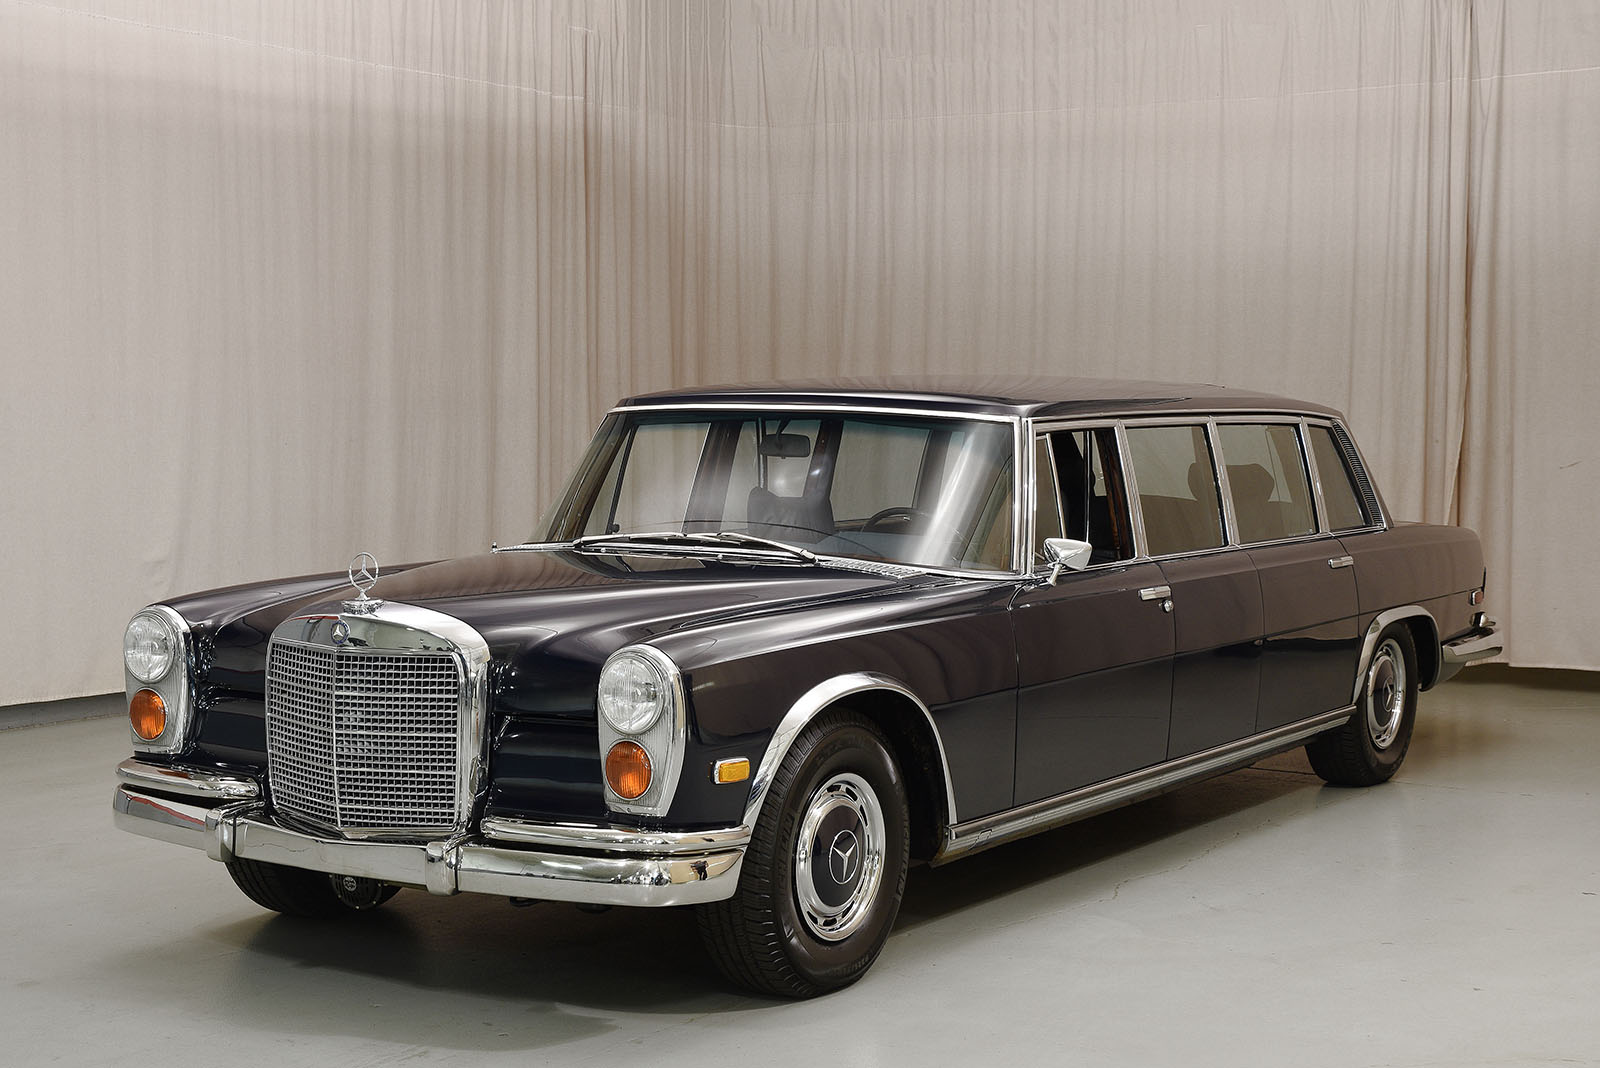 1972 mercedes benz 600 pullman sedan hyman ltd classic cars. Black Bedroom Furniture Sets. Home Design Ideas